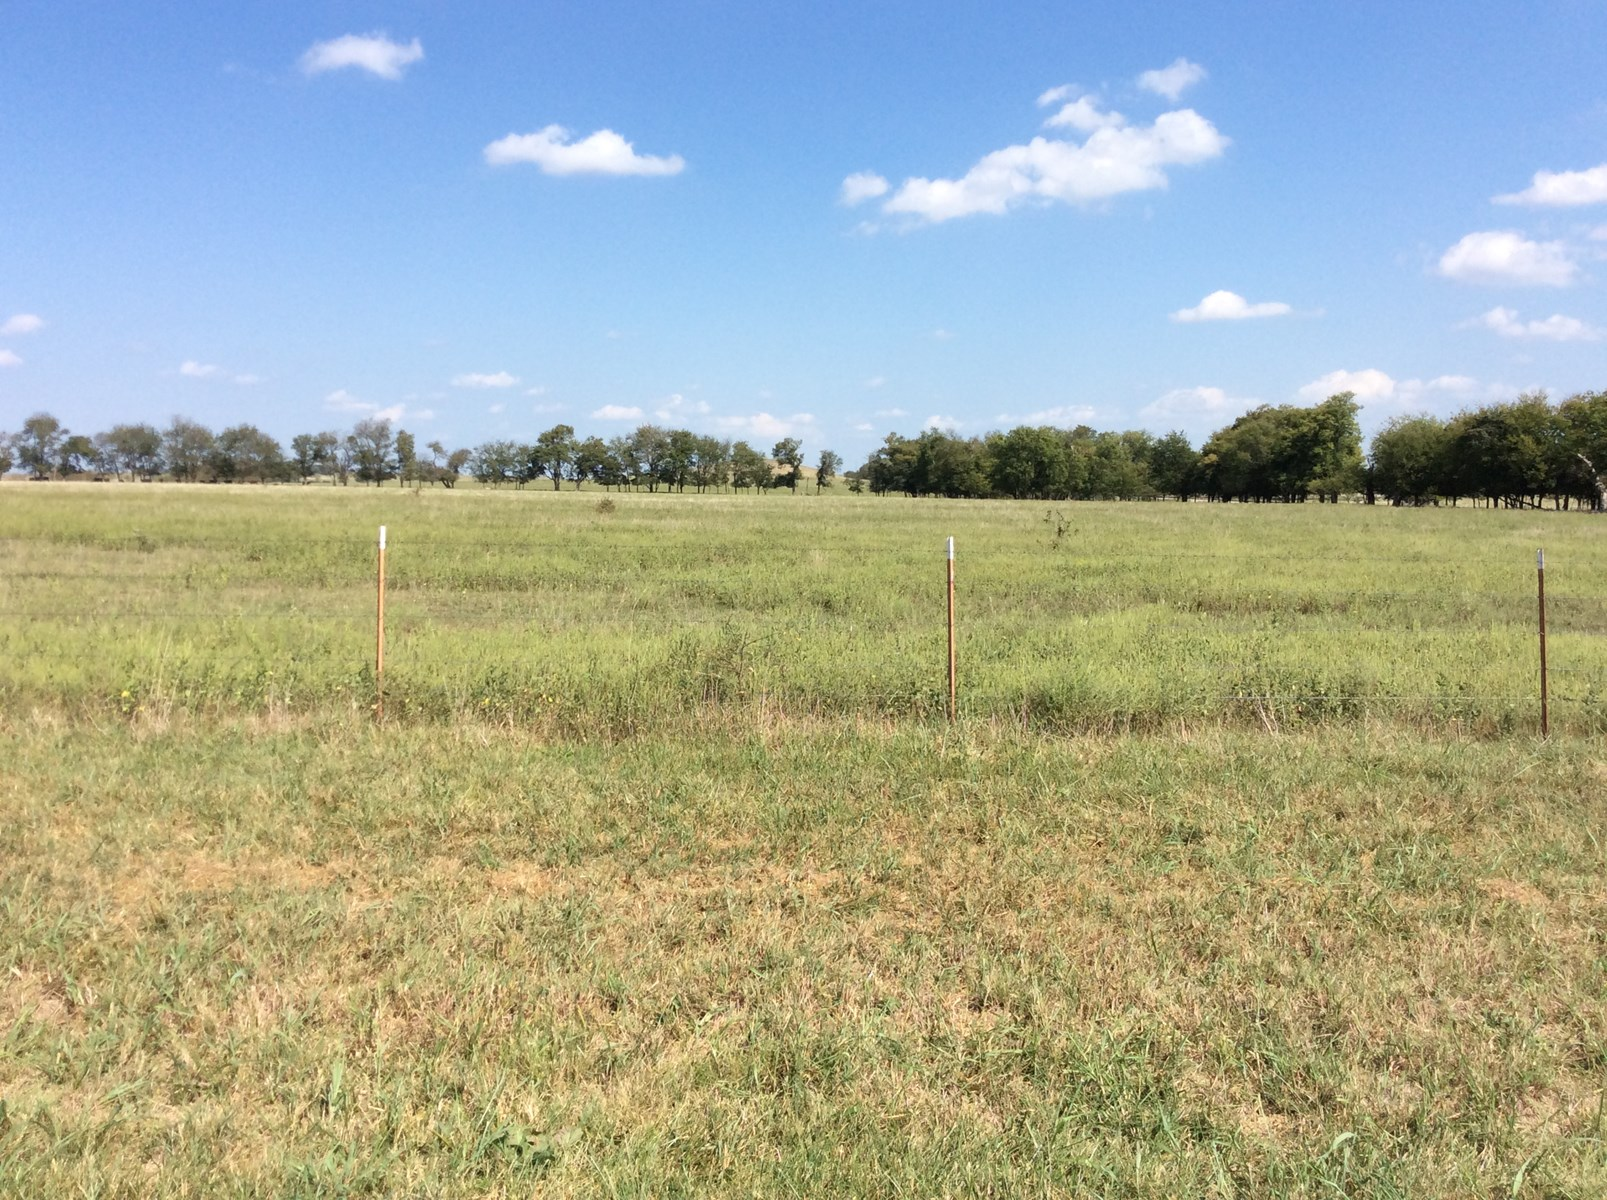 128 ACRES FOR HUNTING, AG LAND OR DEVELOPING